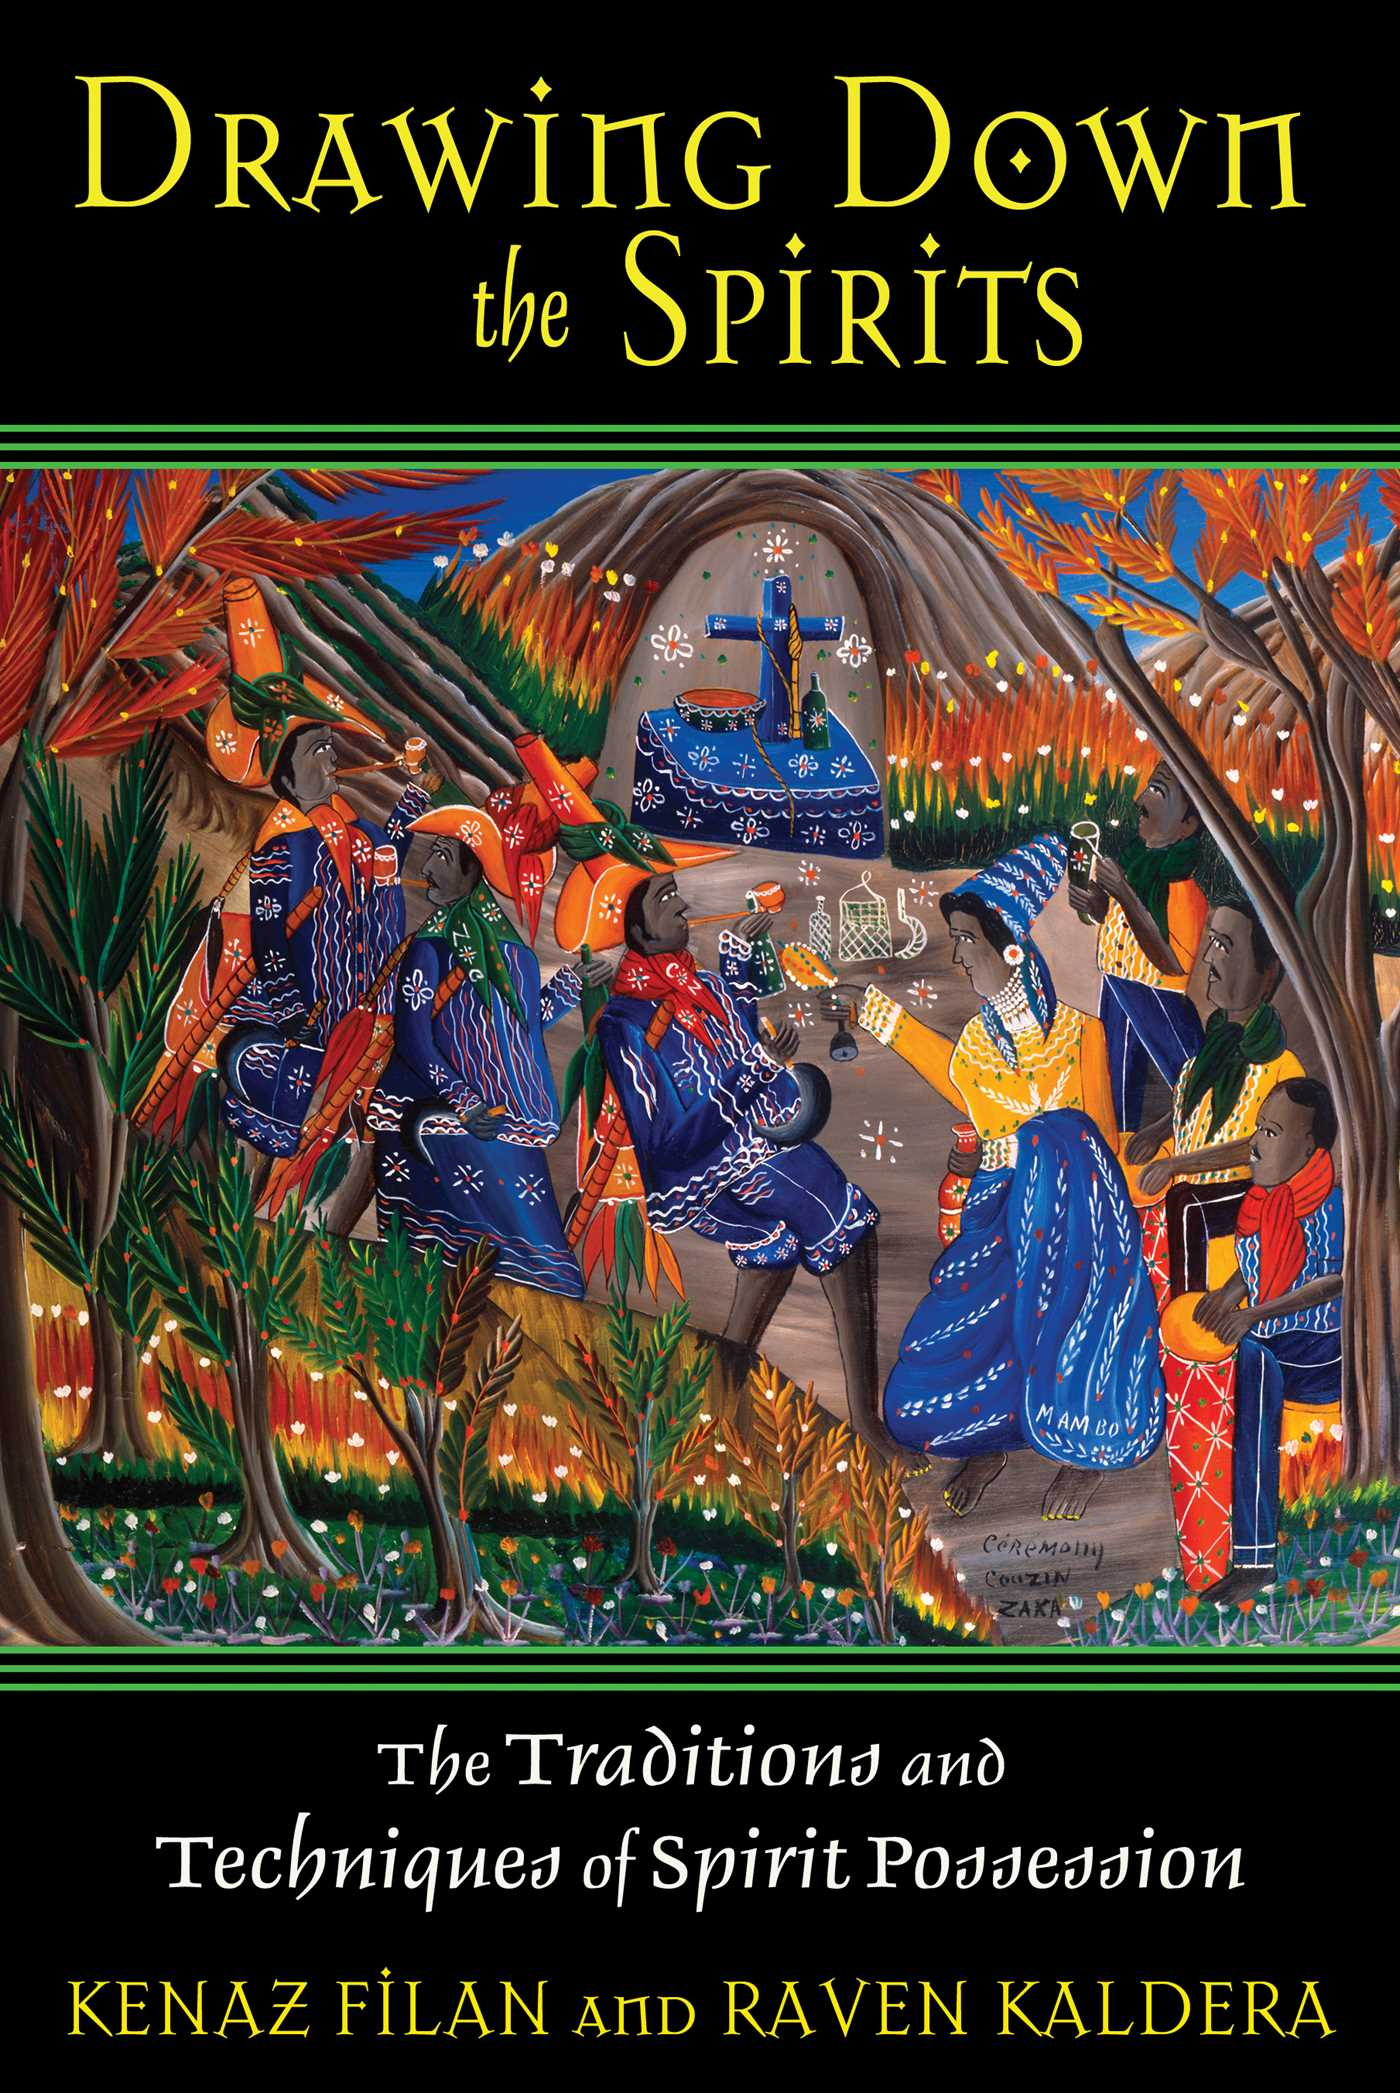 Sacred arts of haitian vodou ebook array drawing down the spirits ebook by kenaz filan raven kaldera rh simonandschuster fandeluxe Image collections